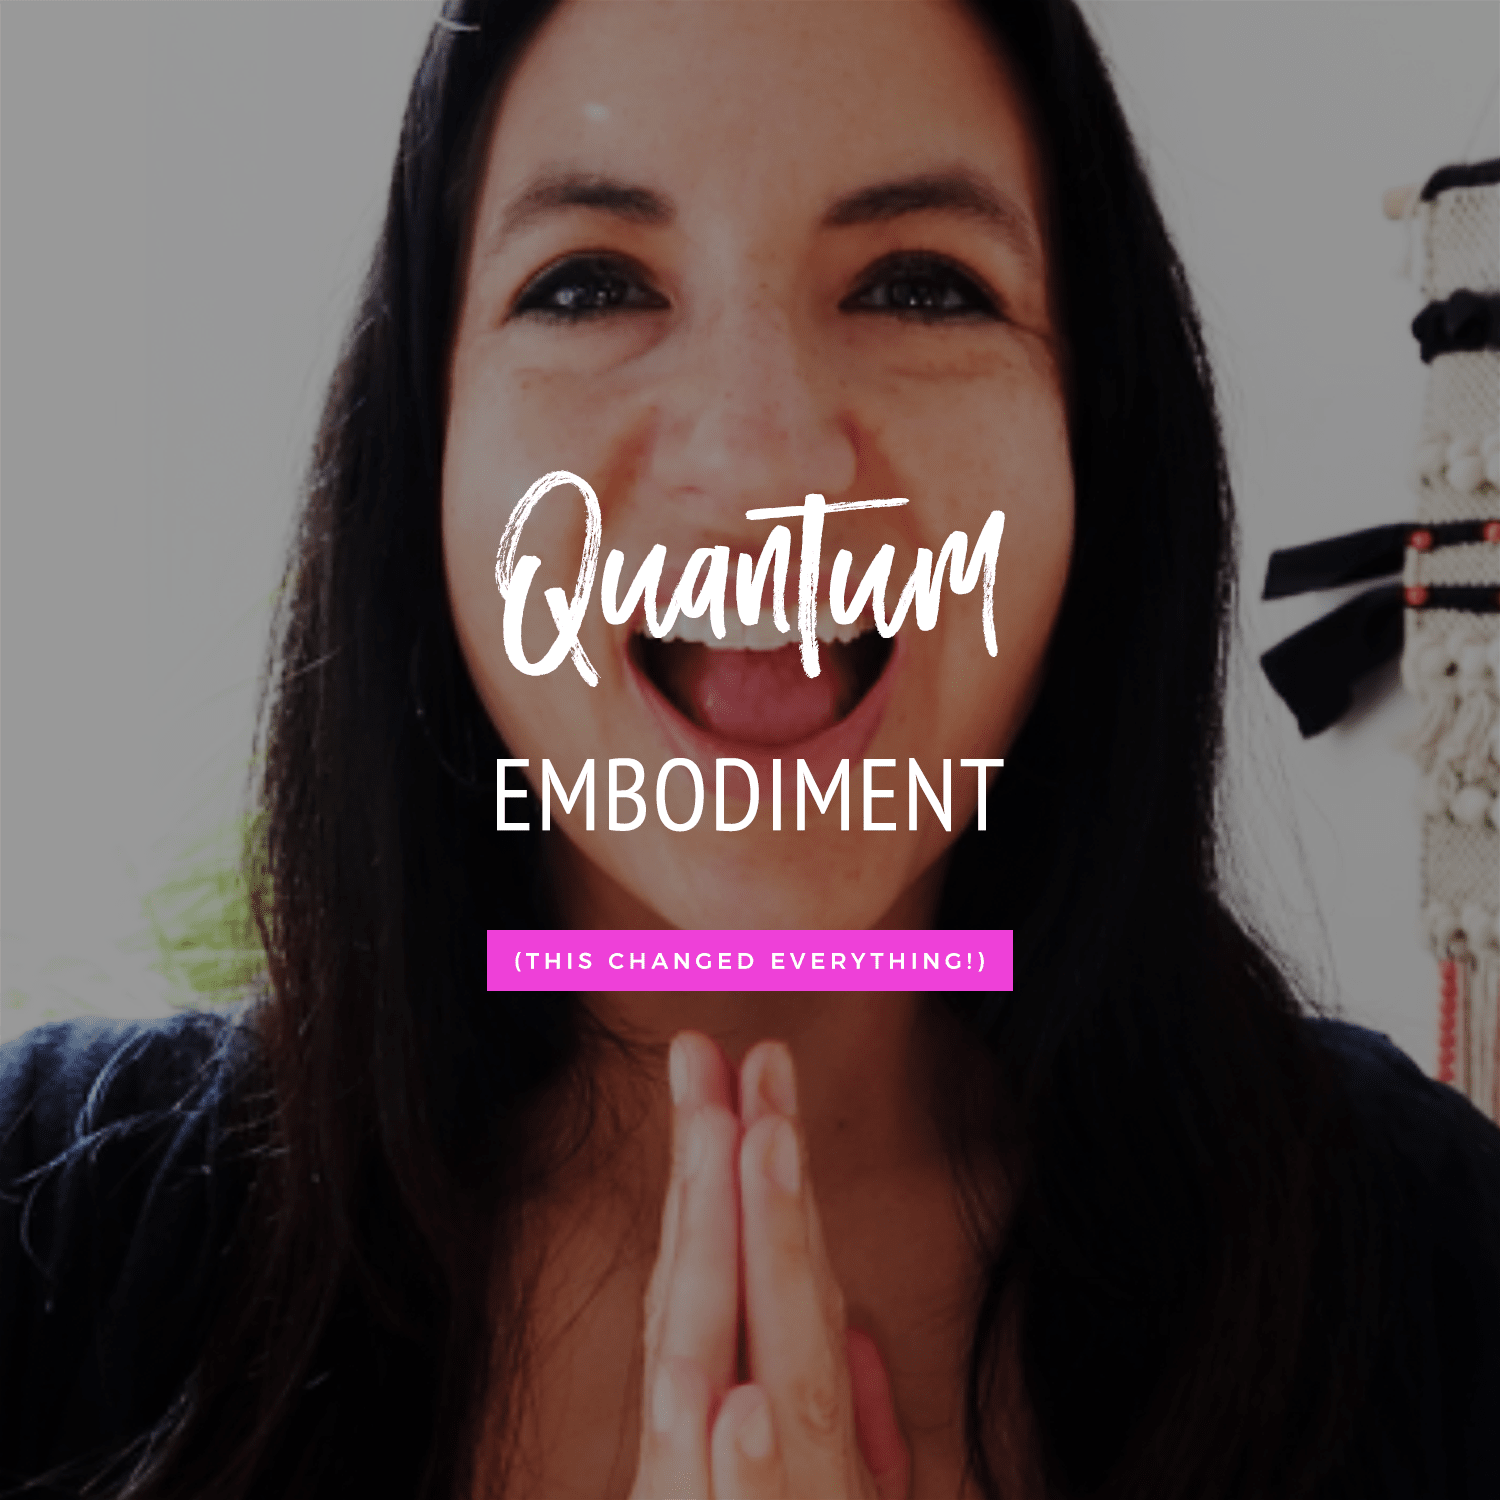 Quantum Embodiment (This Changed Everything For Me!)